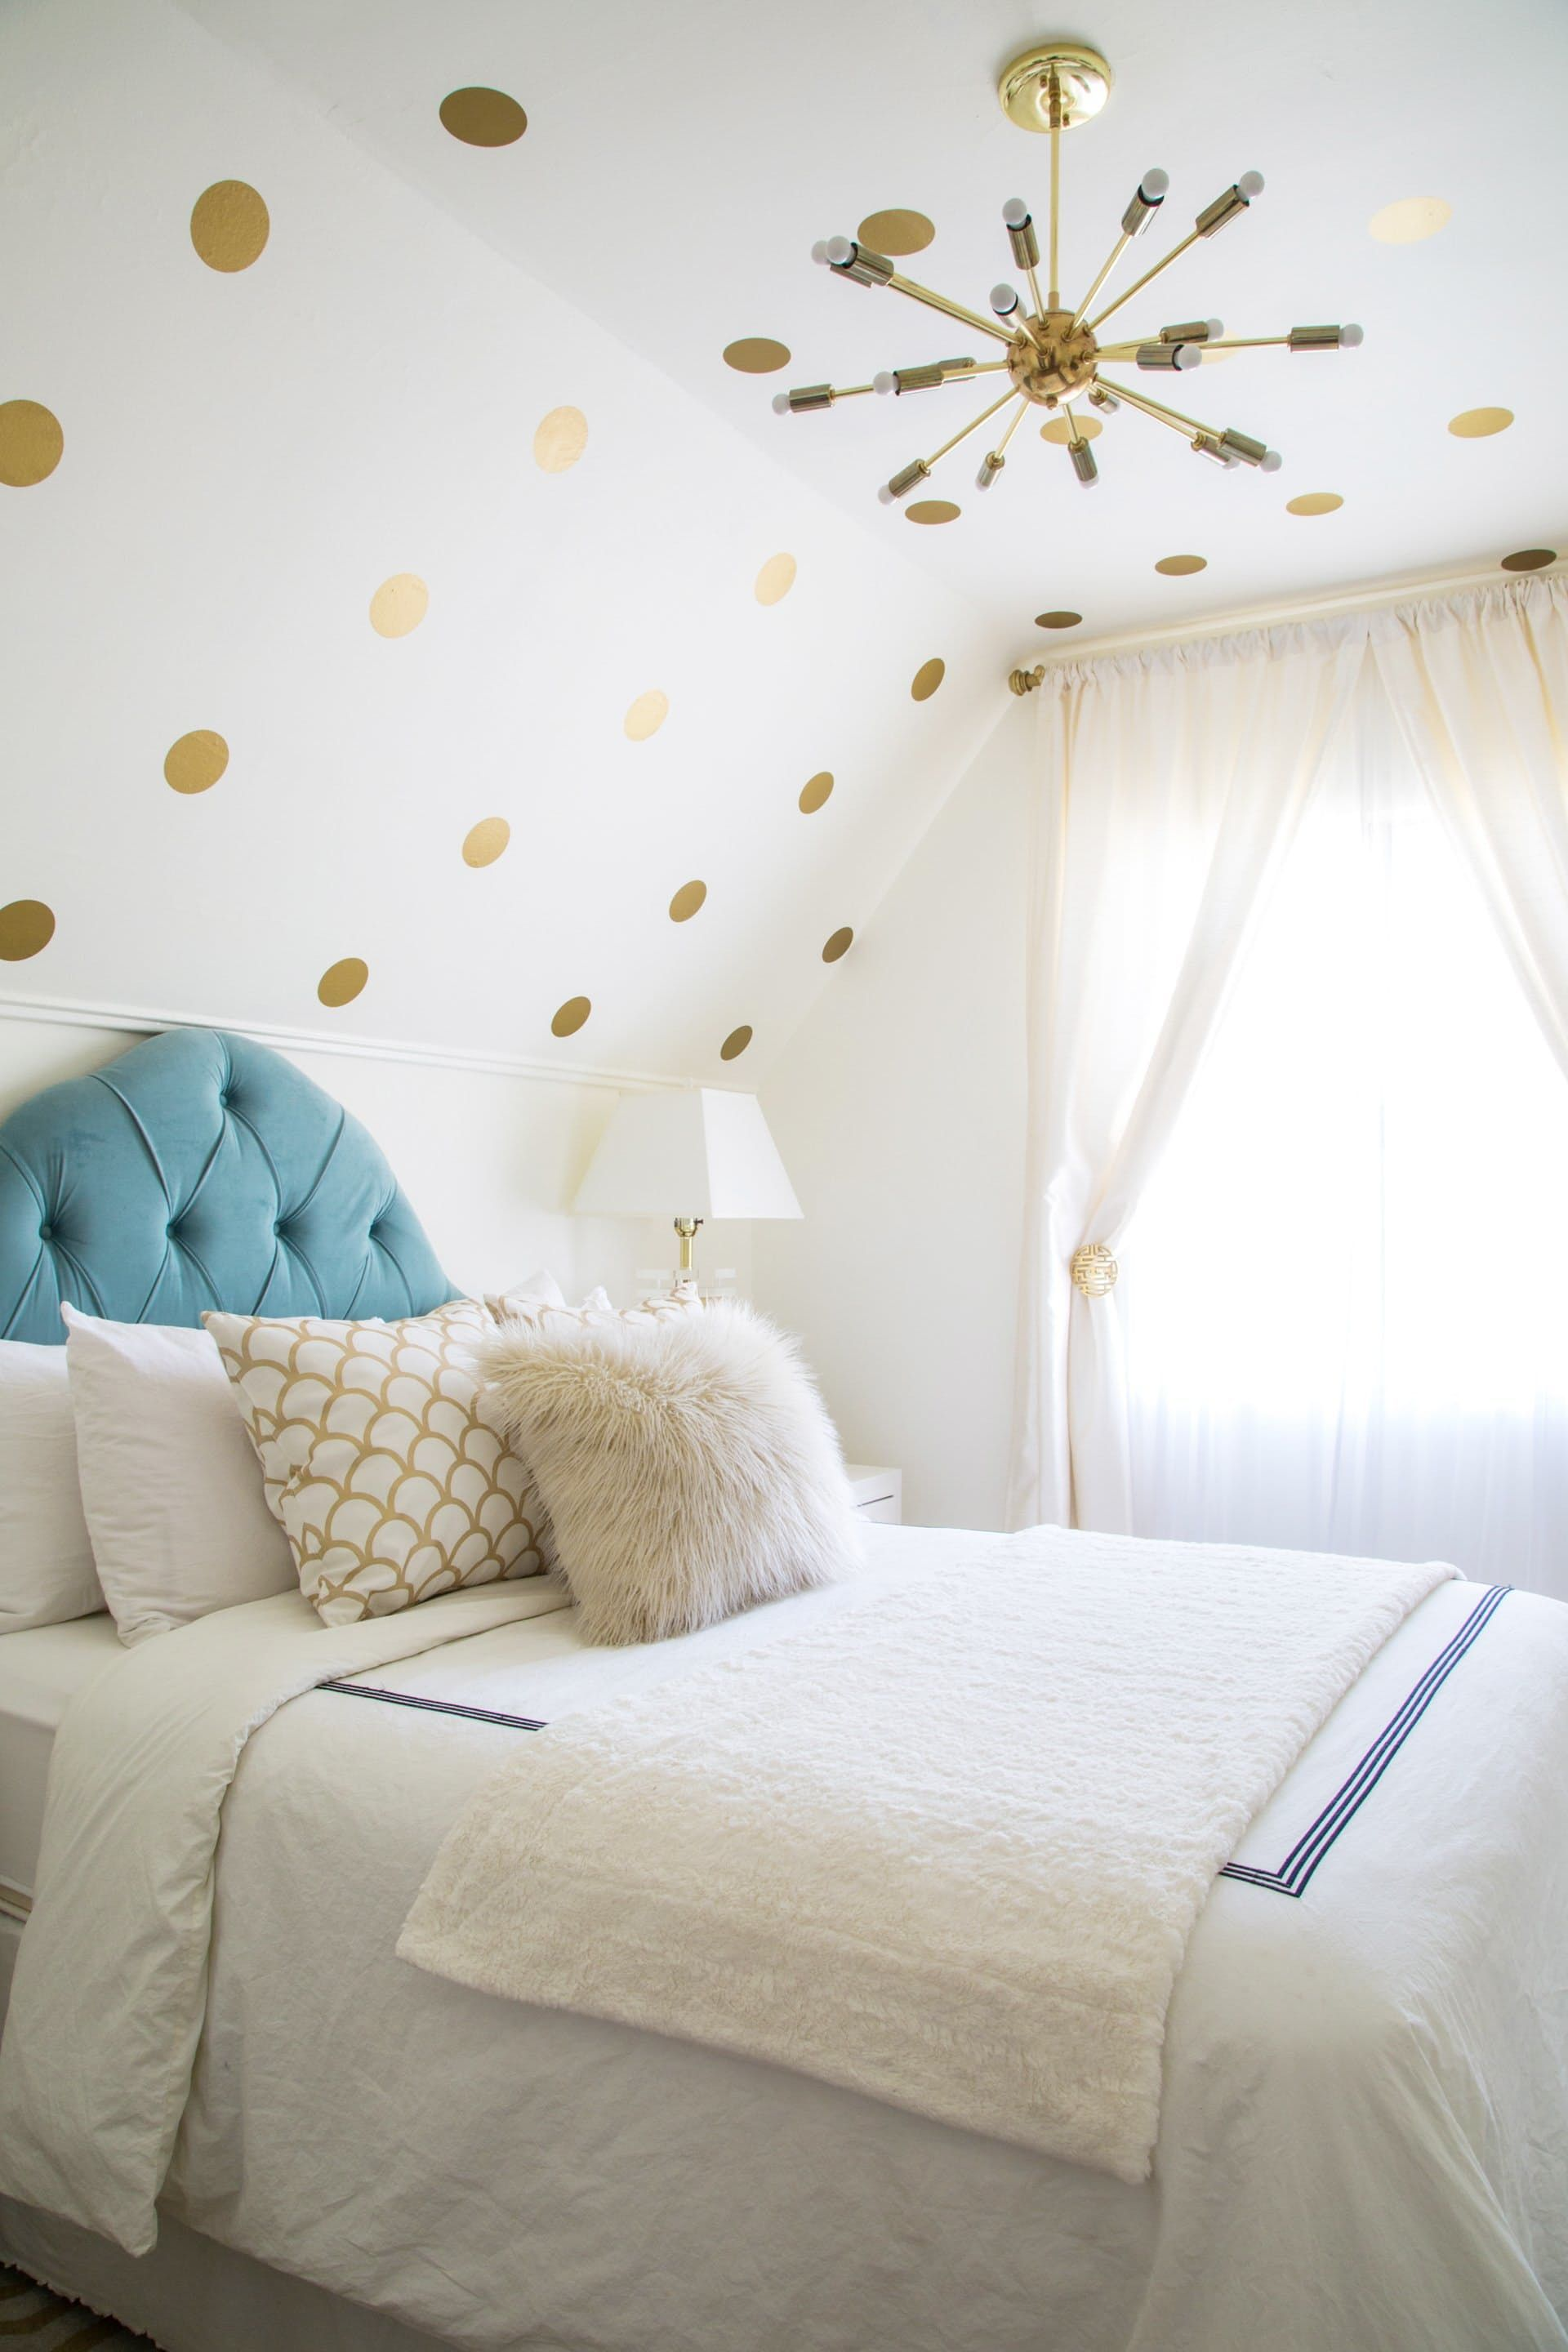 Go beyond art above your bed stylish ideas that will wow in your